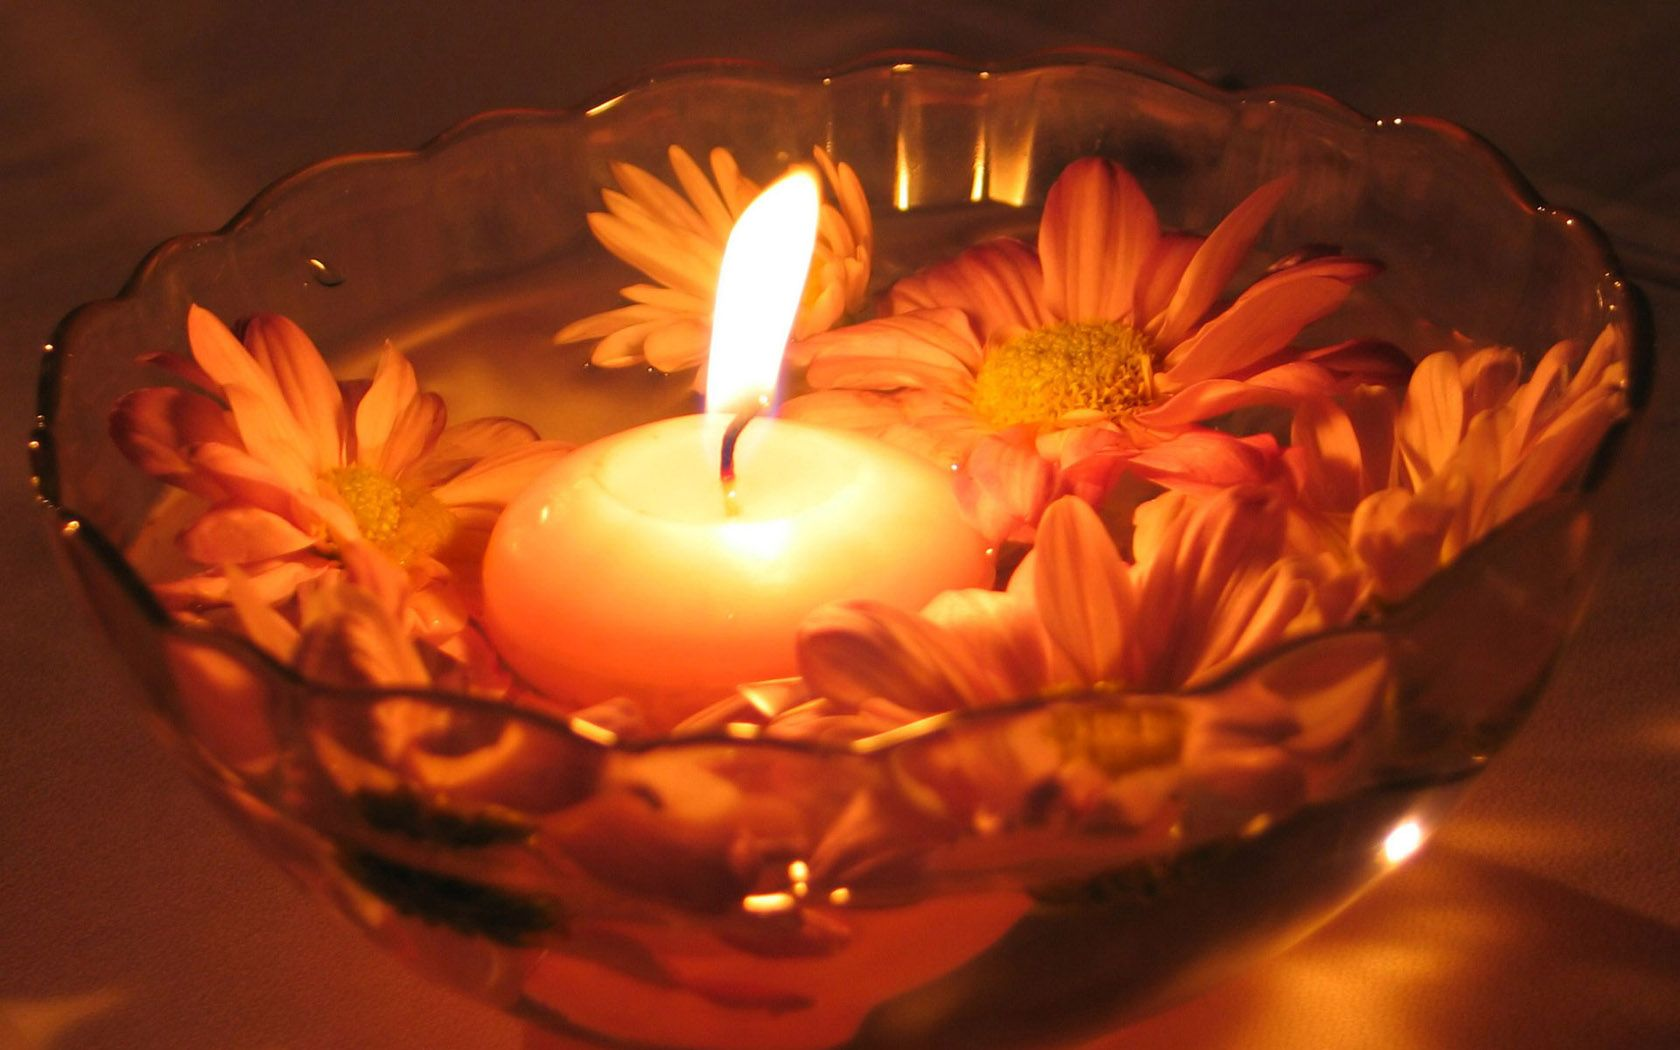 Romantic Candles On The Water Widescreen Romantic Candle Light Candlelight Pictures Candlelight Candles Wallpaper Candles Romantic Candles